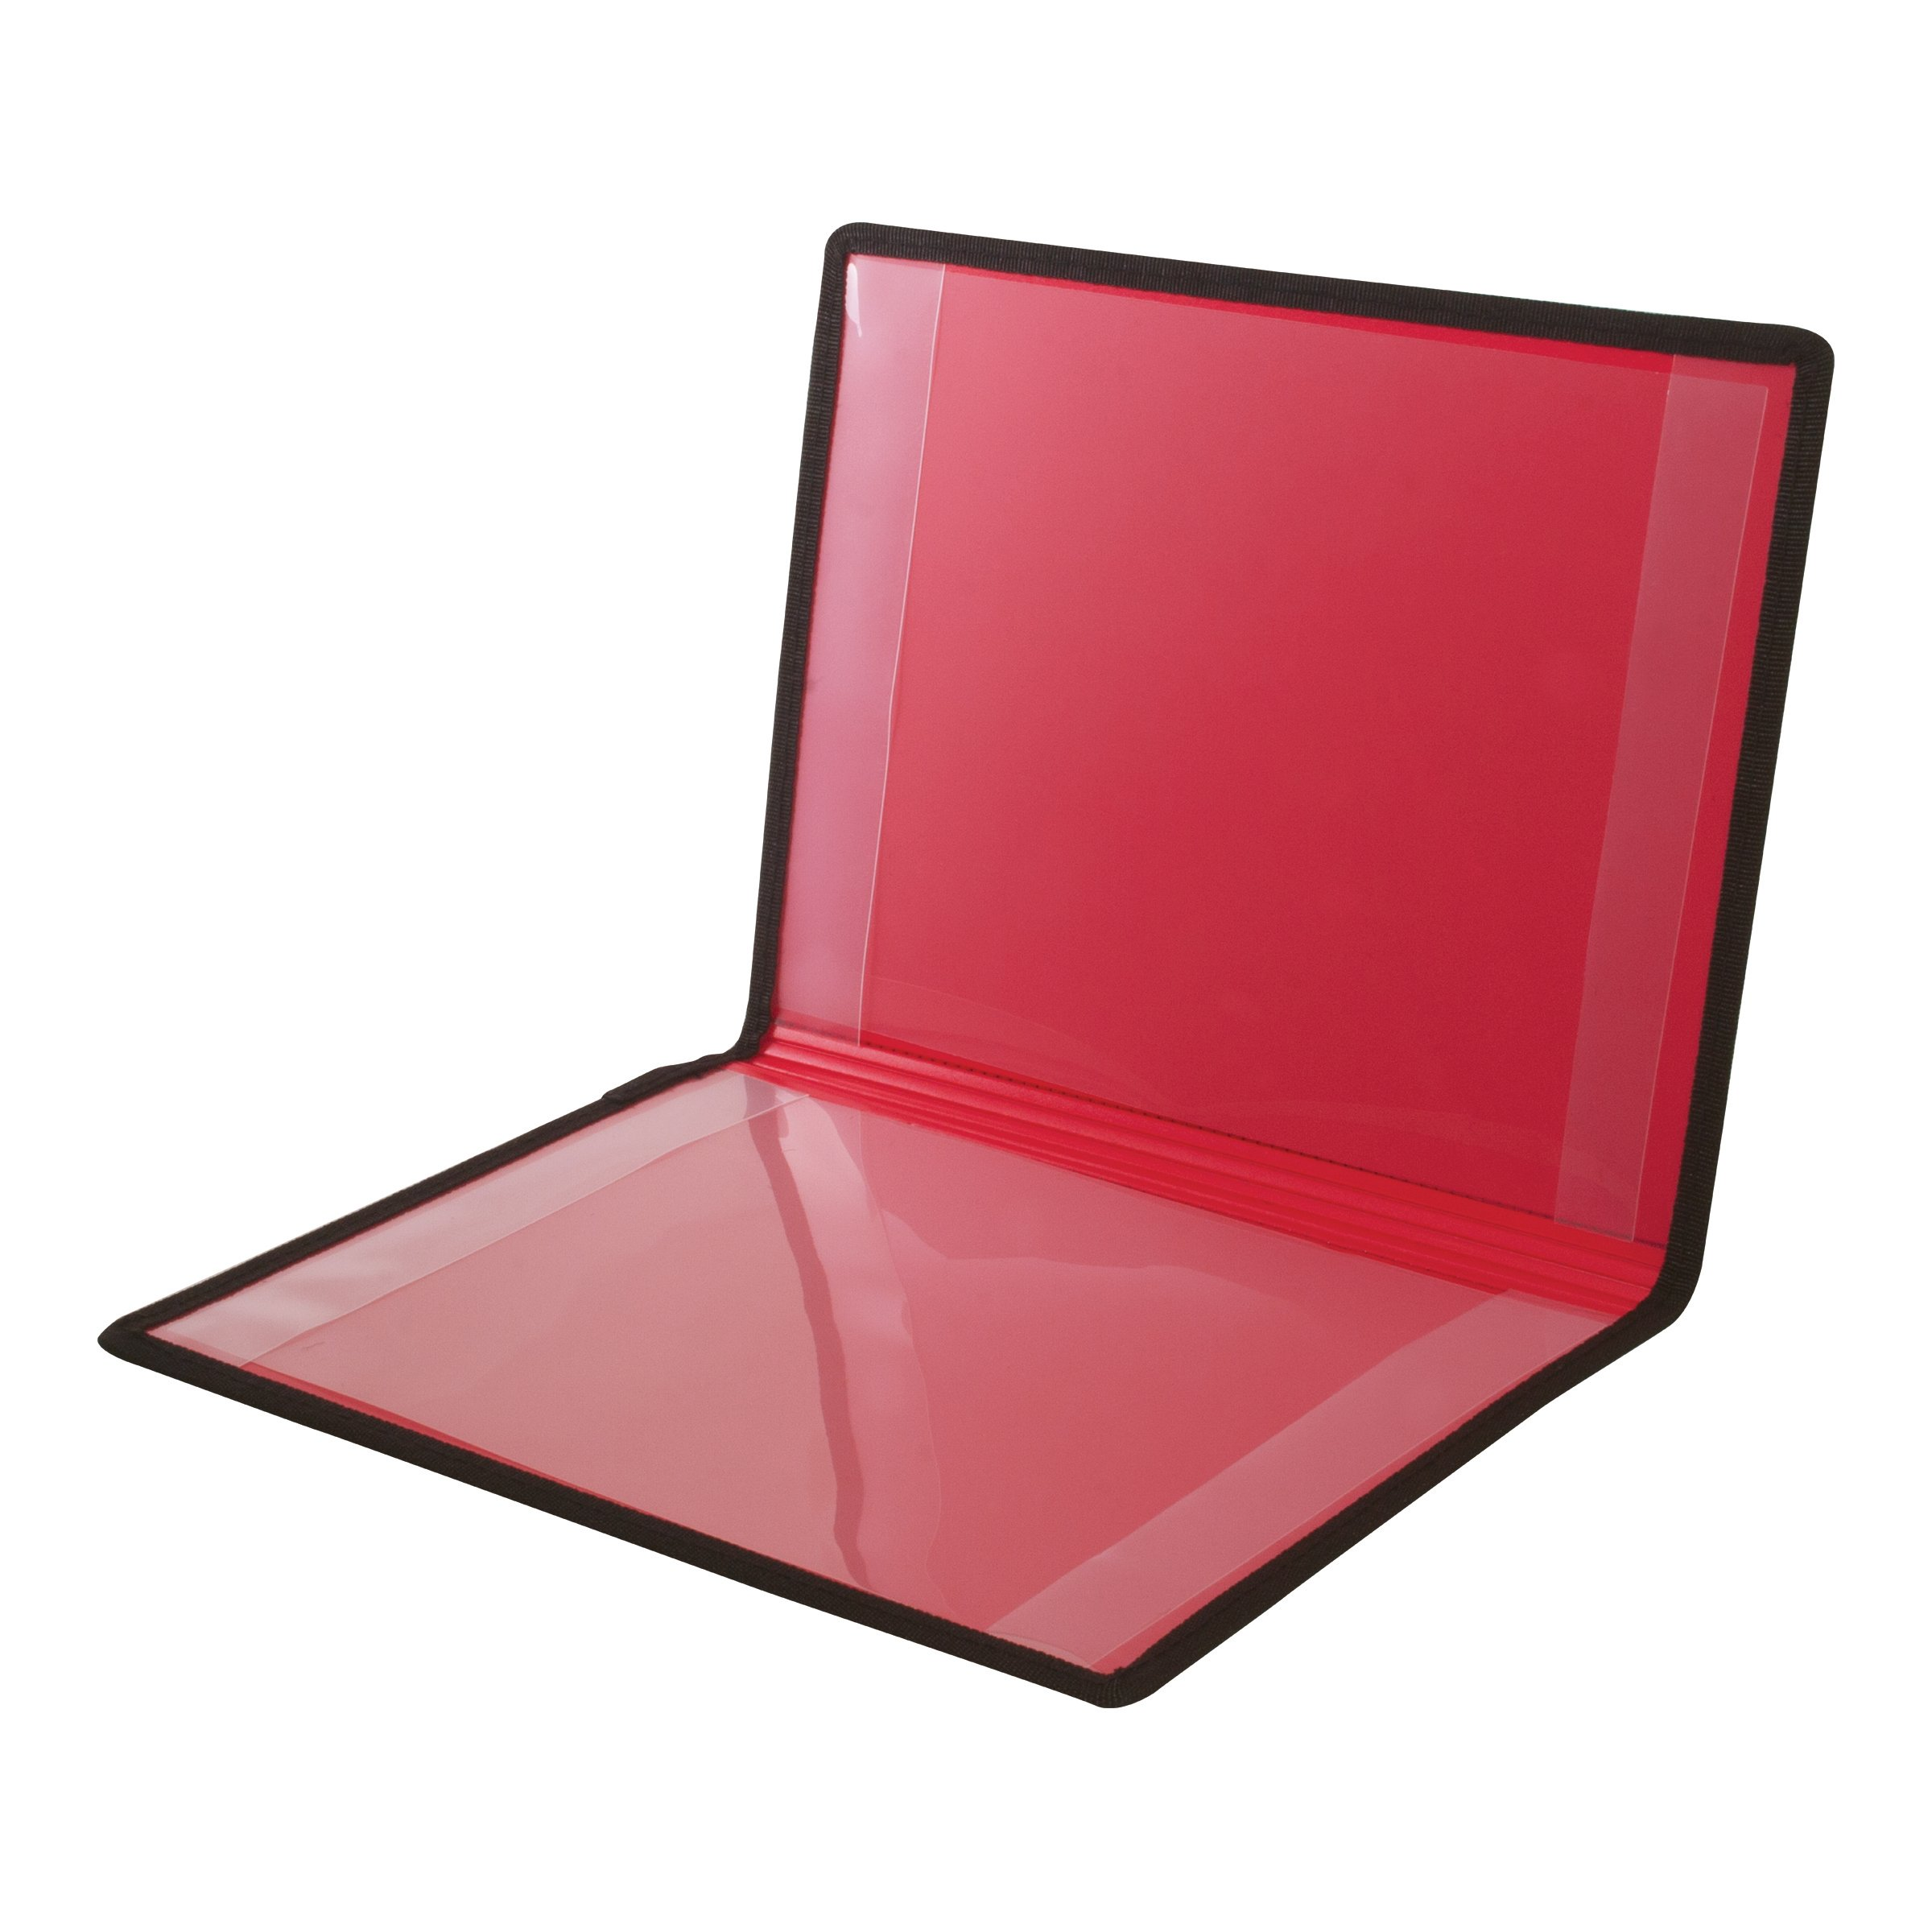 Advantus Certificate Holder, Black with Red Lining, Dual Pockets, 9 x 12 Inches (ANG204)